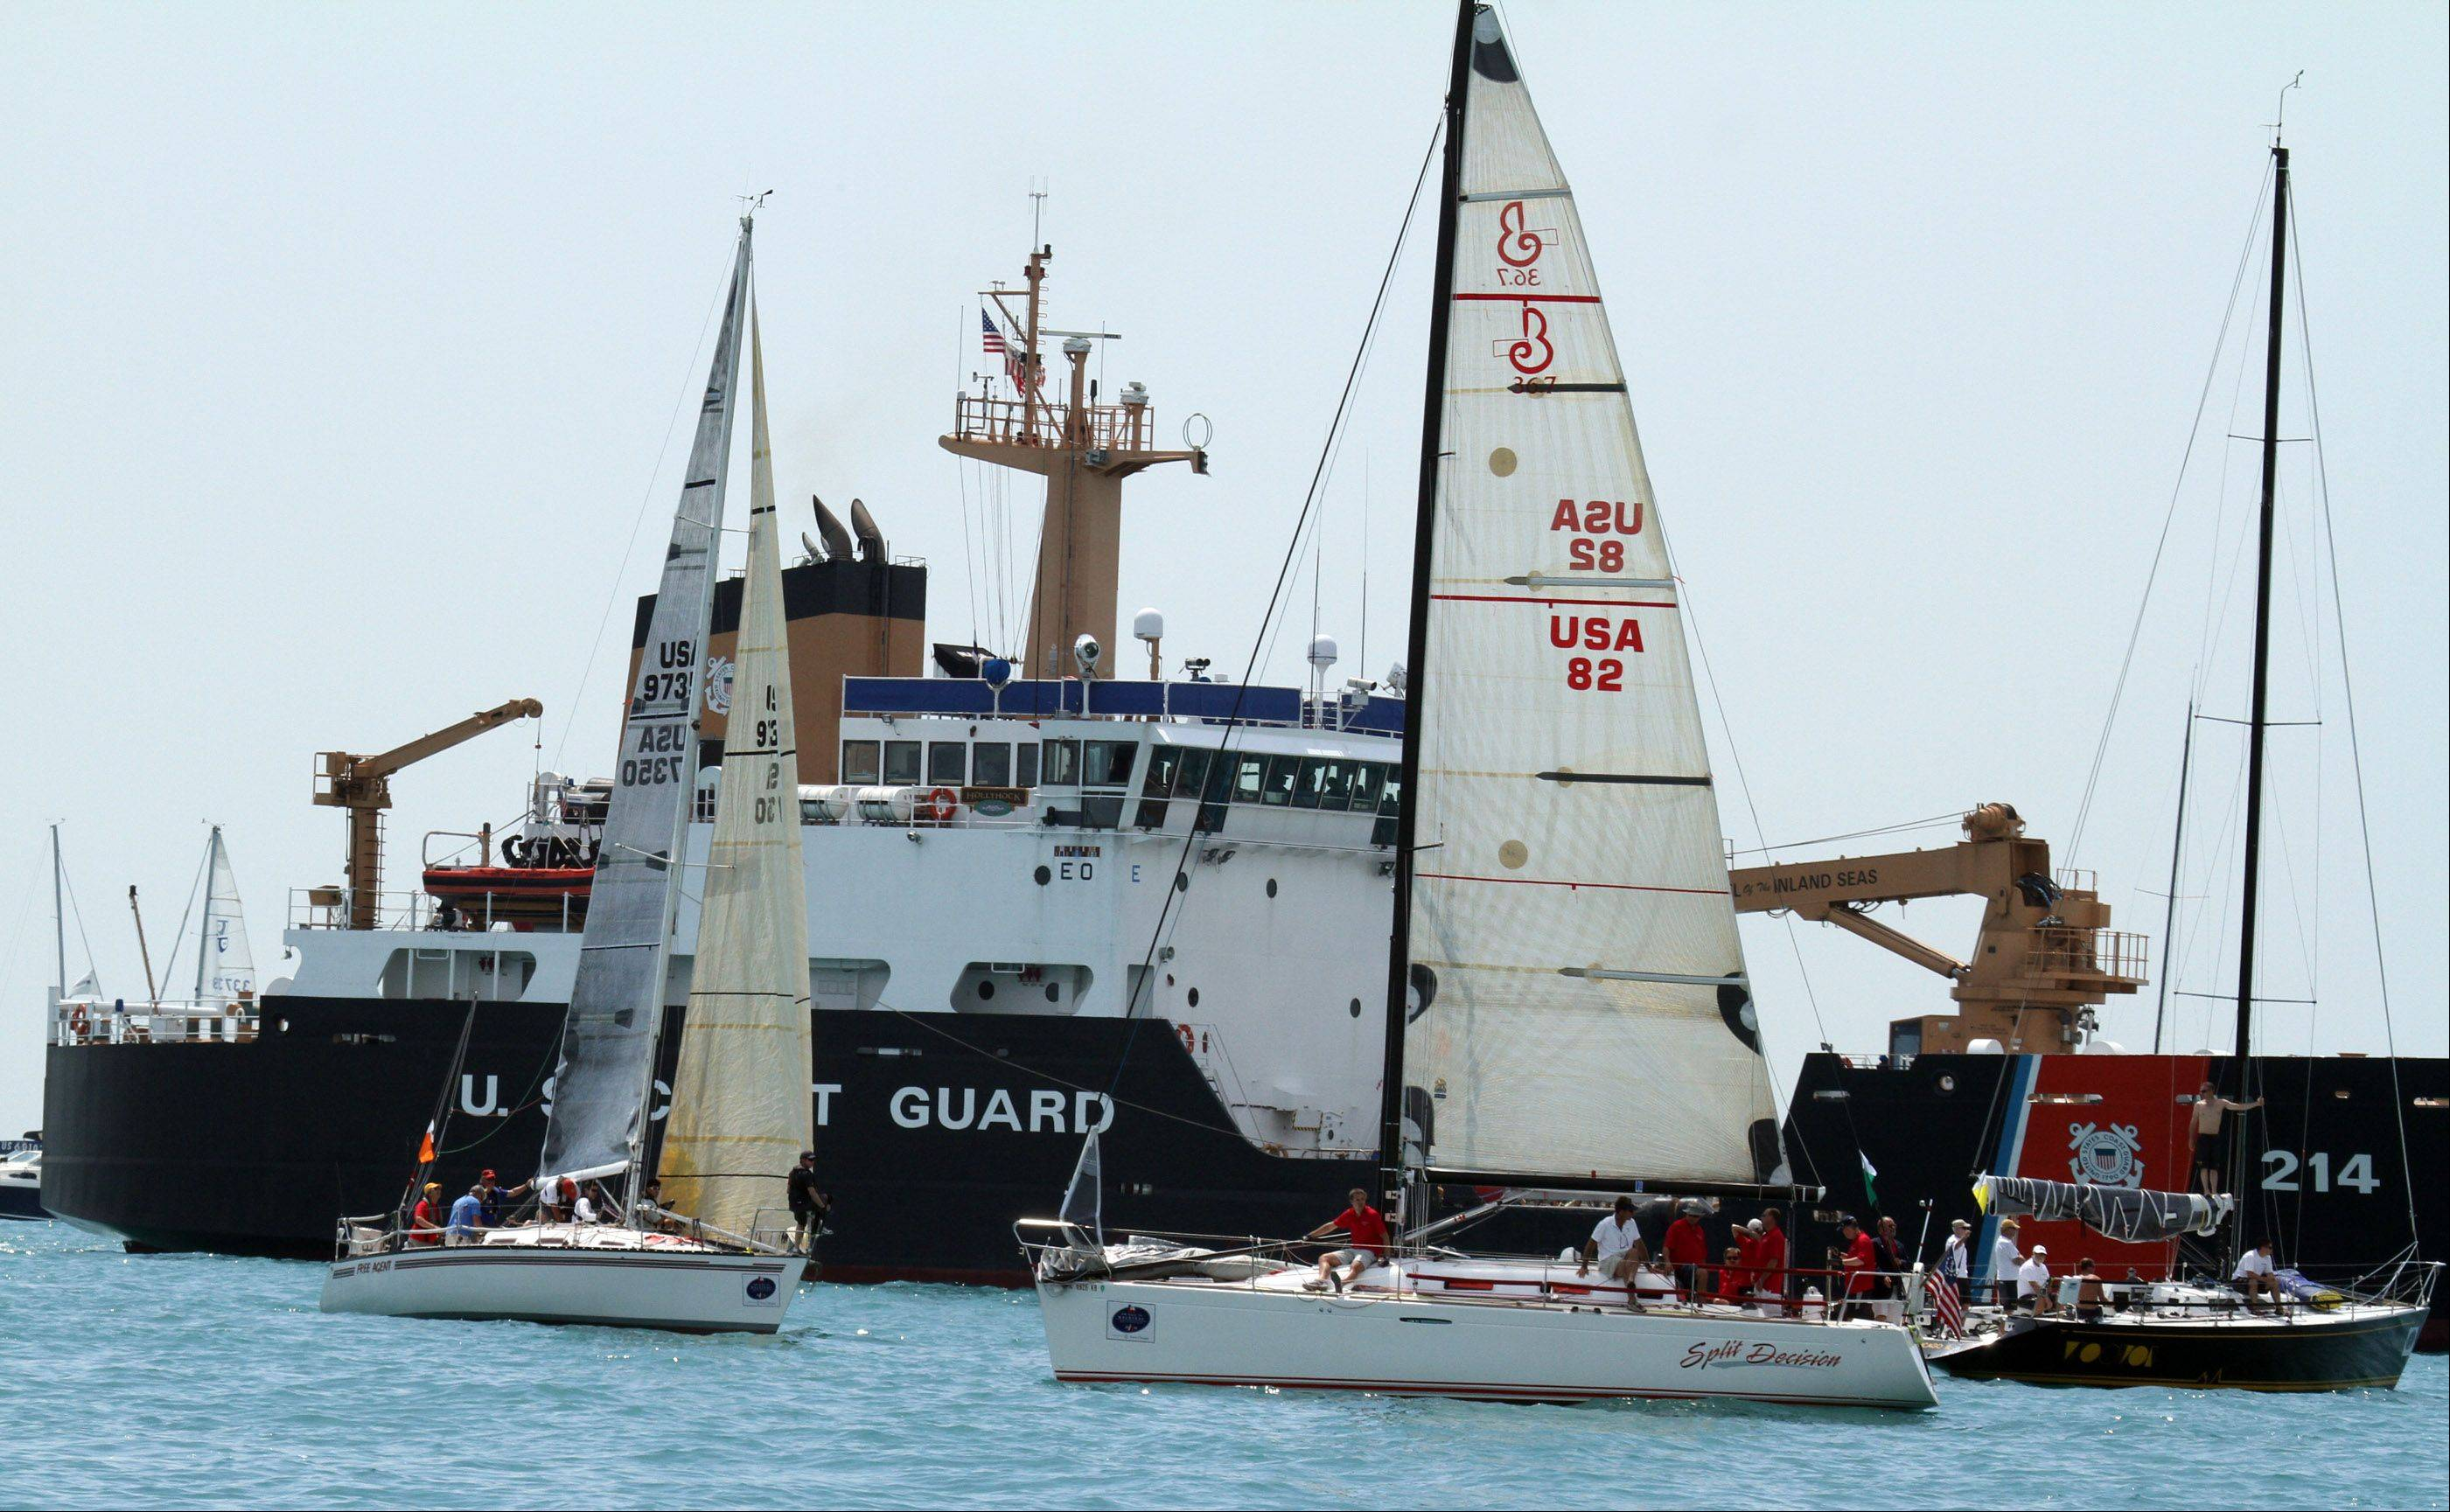 A U.S. Coast Guard ship was near Split Decision, right, USA 82, owned by Mark Norris, of Chicago, with the Chicago Yacht Club, just before the start of the 104th Chicago Yacht Club Race to Mackinac on Lake Michigan near Chicago on Saturday, July 21.